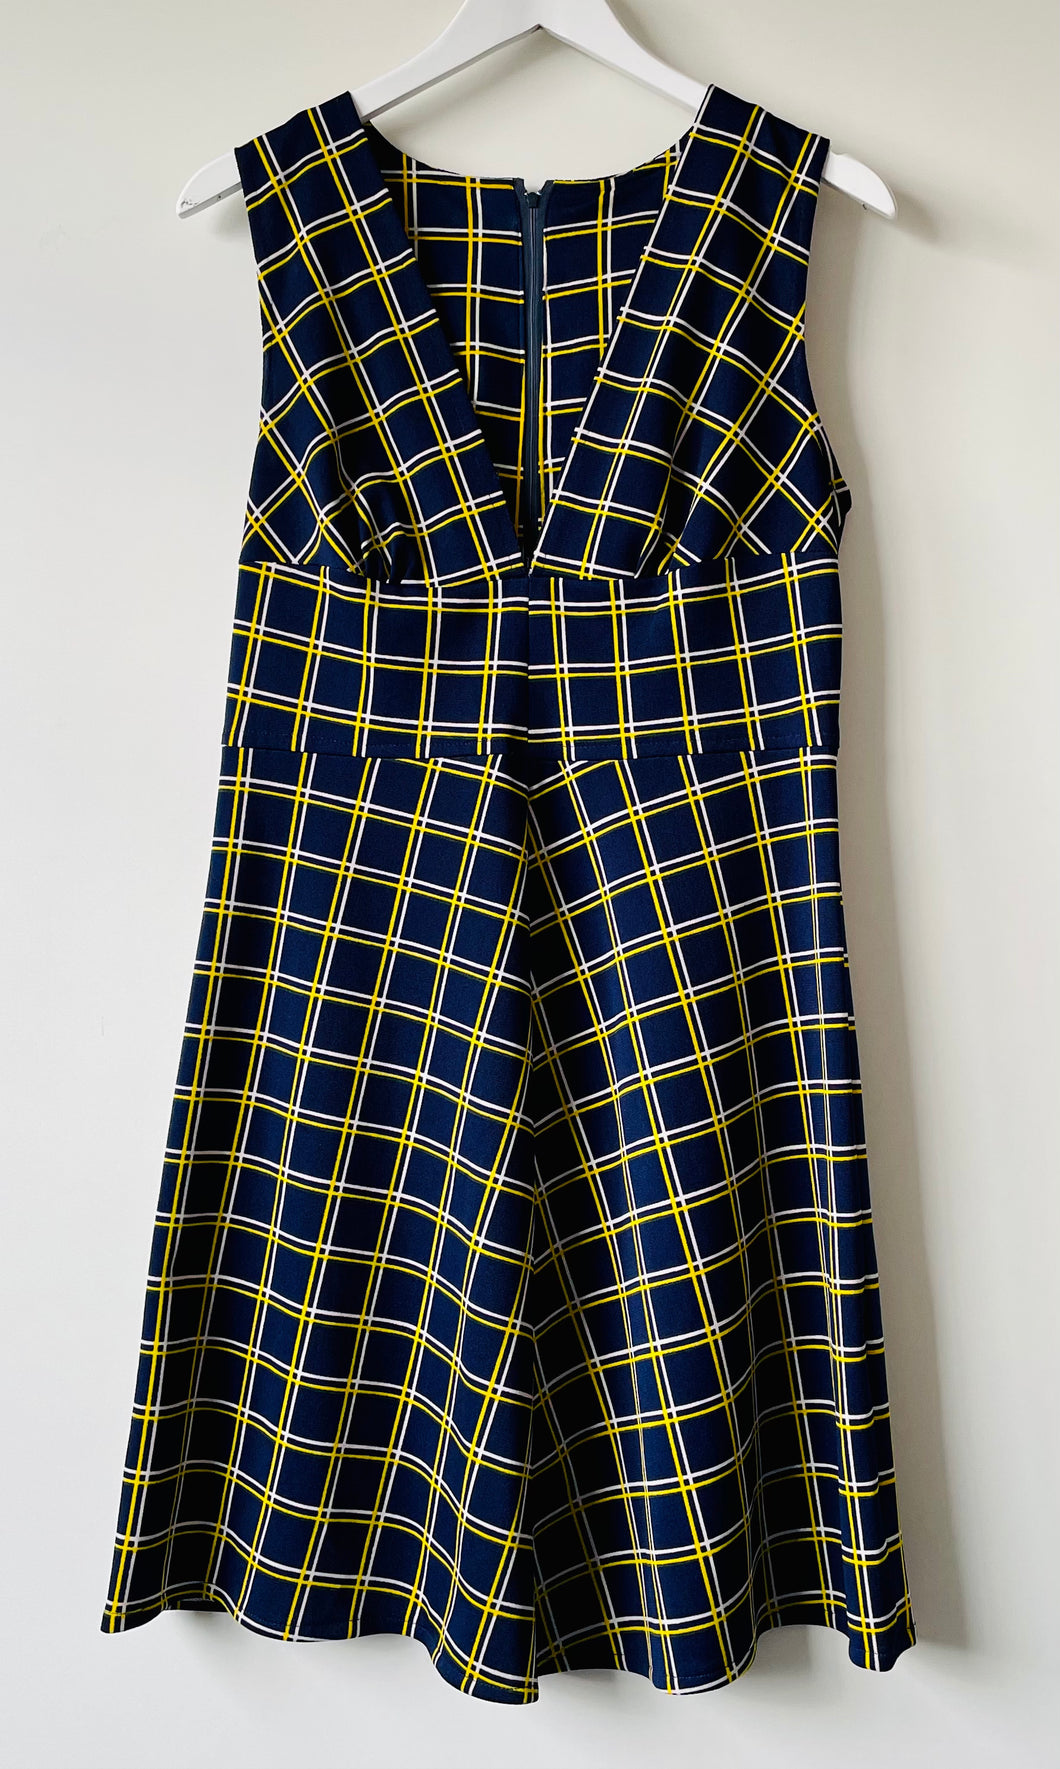 Sleeveless short 1970s blue and yellow check dress S/M